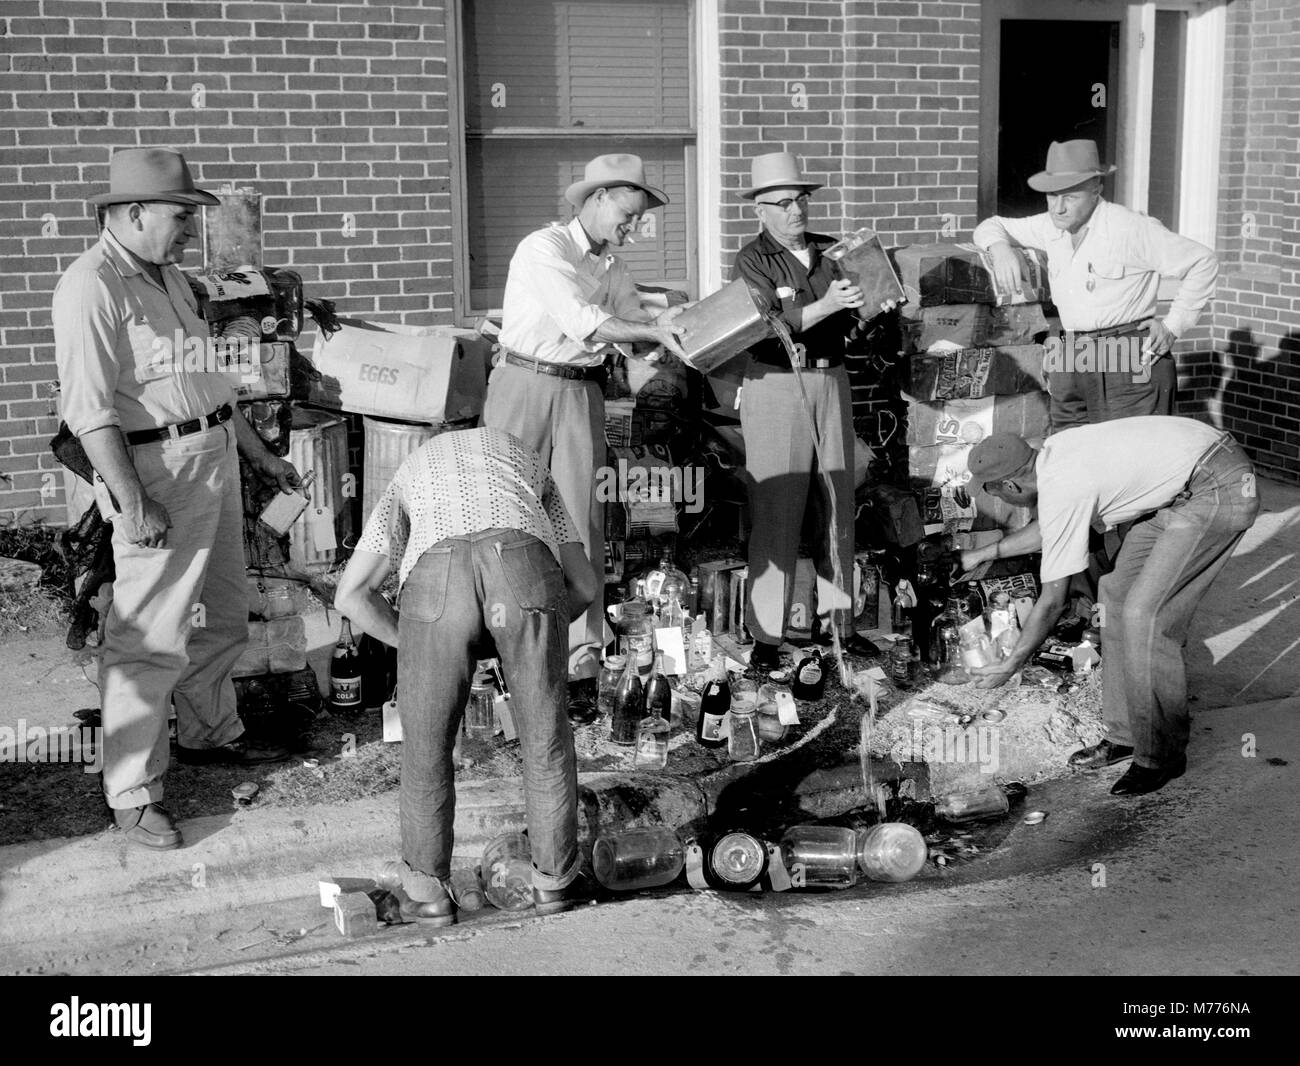 City workers dump illegal moonshine liquor down a storm drain after a raid on still in Georgia, ca. 1955. - Stock Image